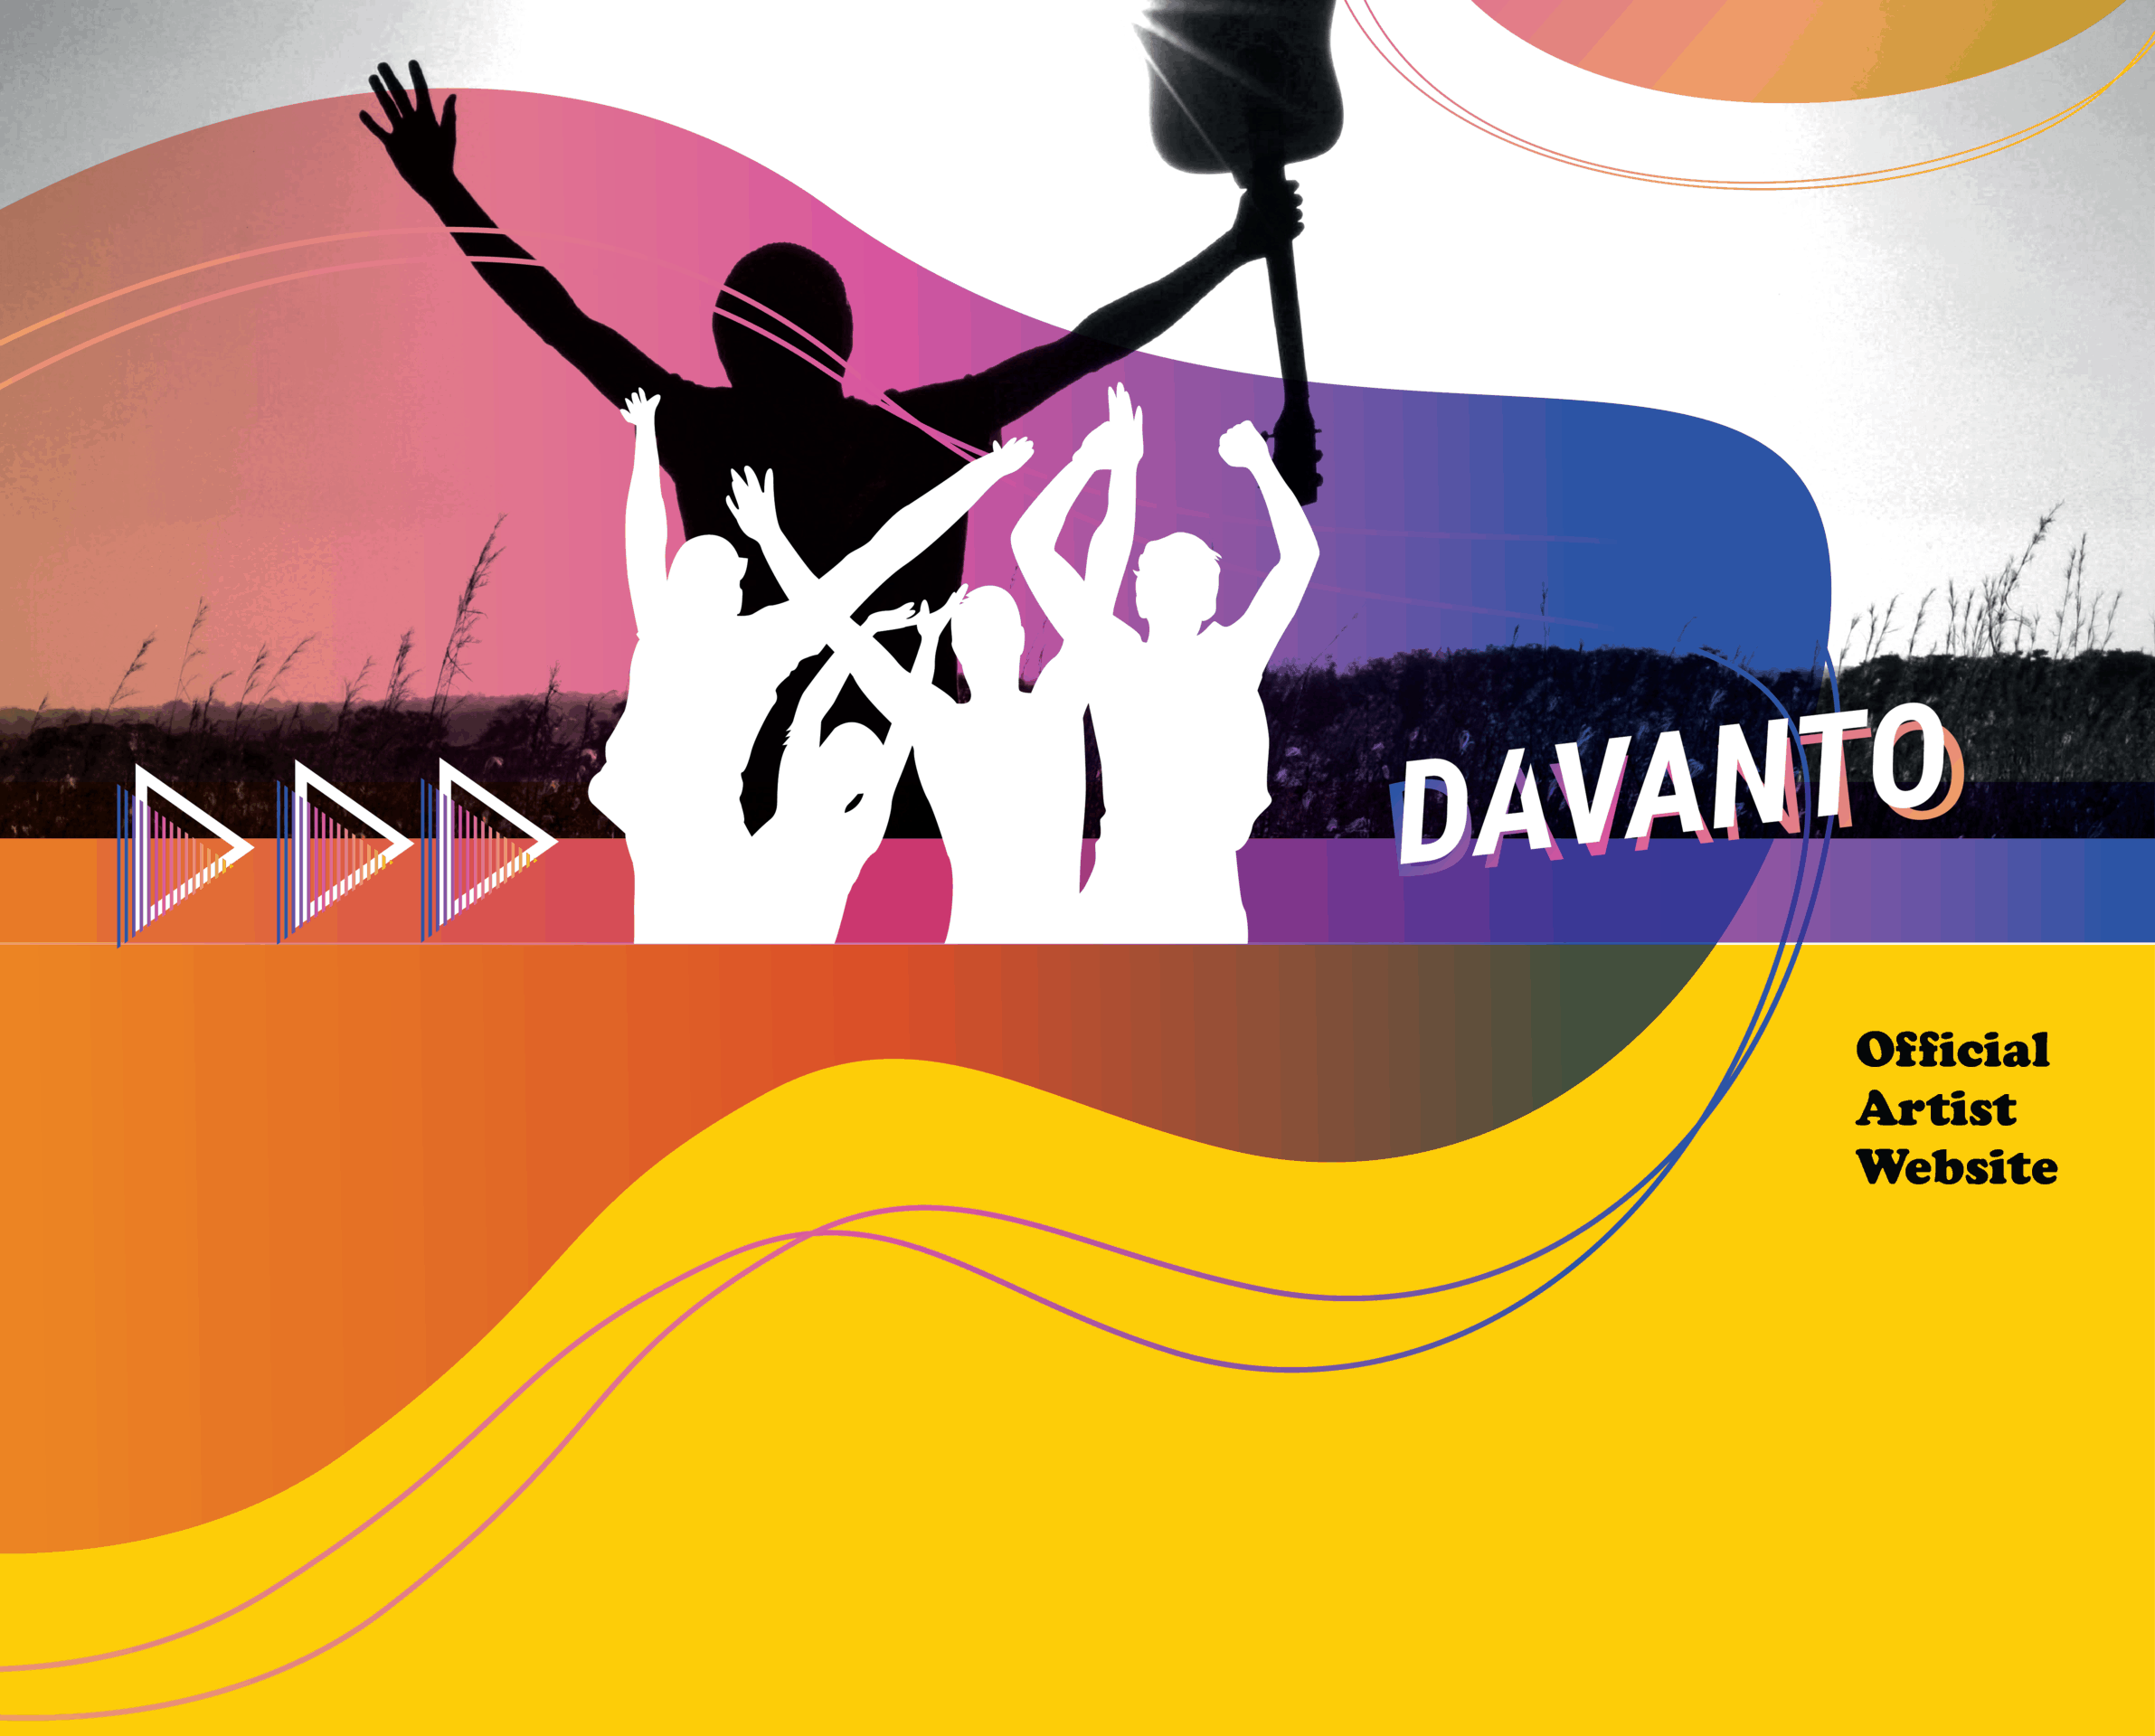 Official Davanto Artist Website